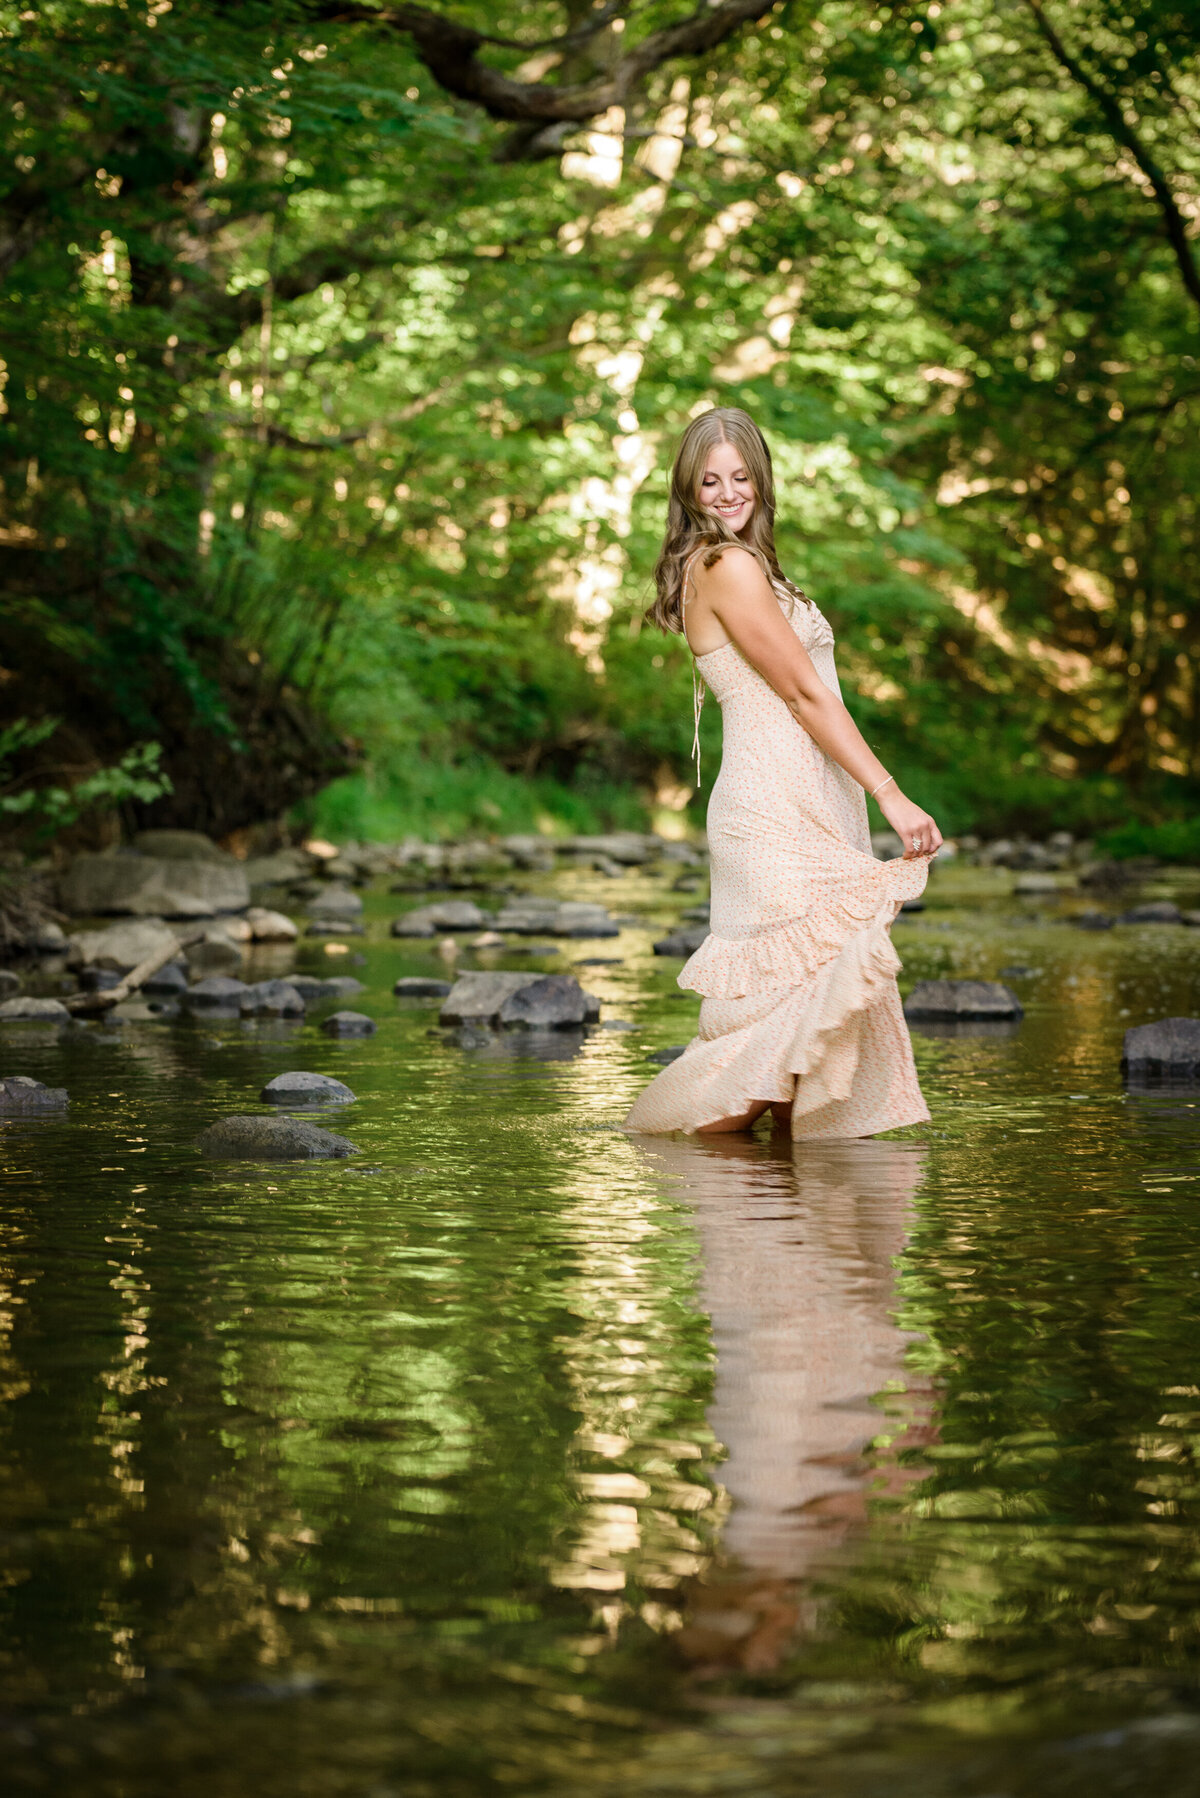 Senior Pictures in water Holland MI Images by Jennifer-19